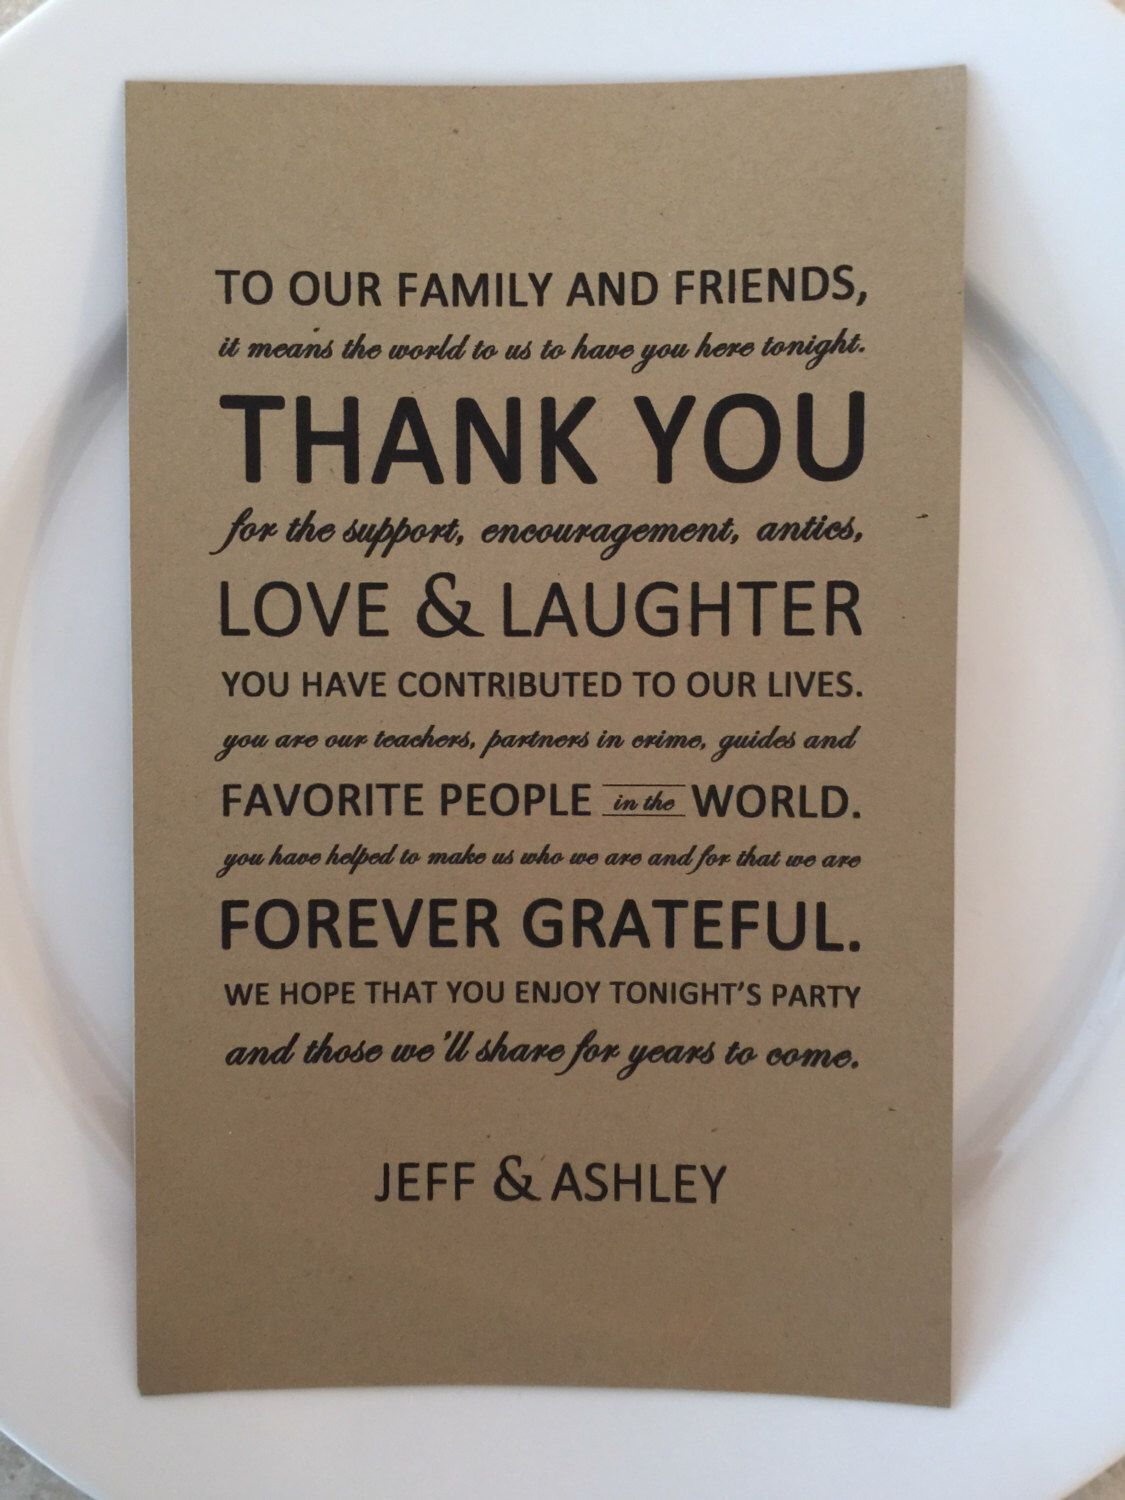 To Our Family And Friends It Means The World To Us To Have You